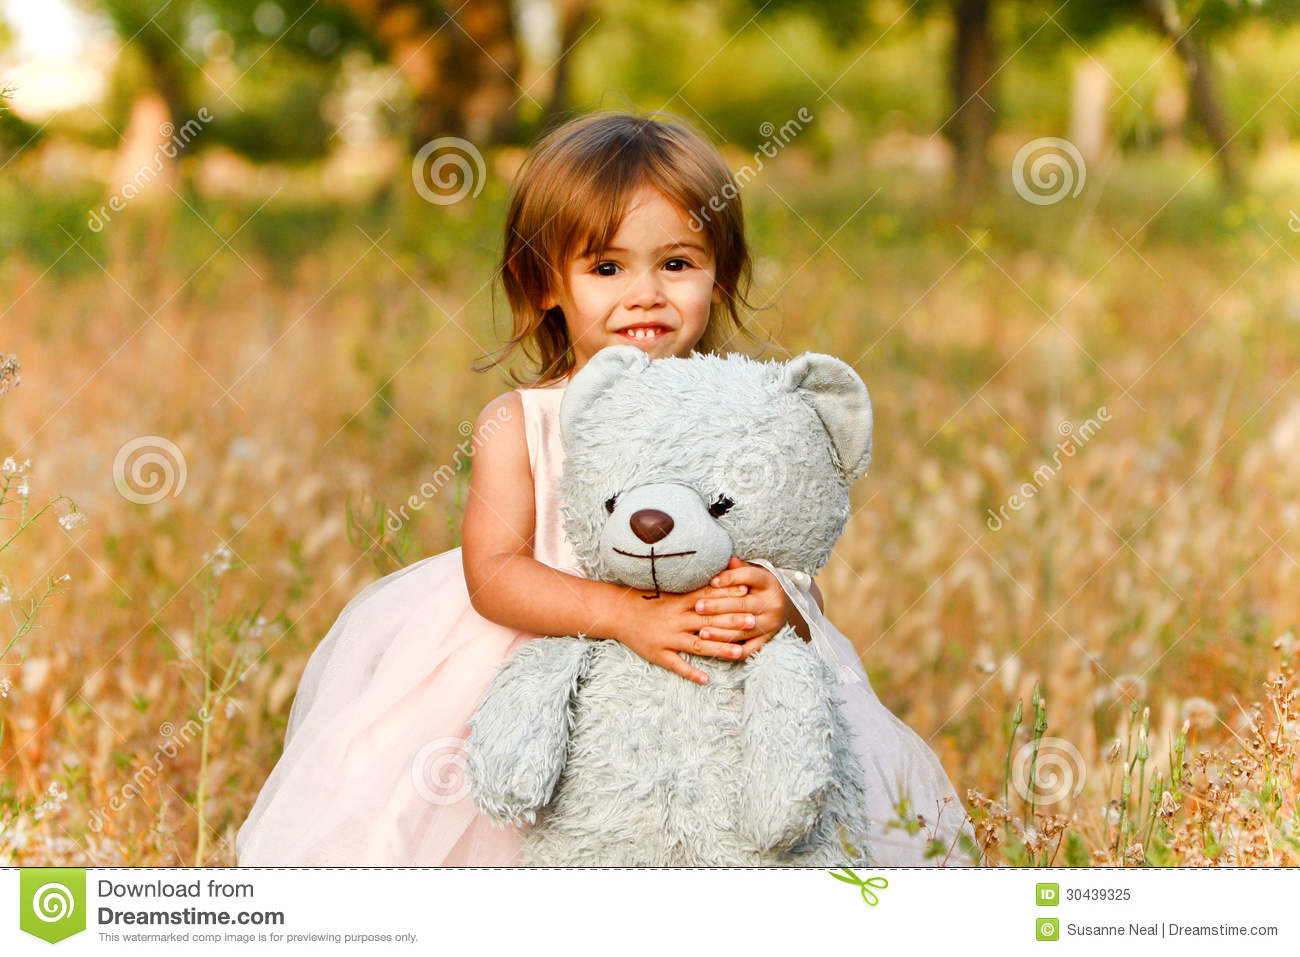 Two-year-old girl in field carrying stuffed animal